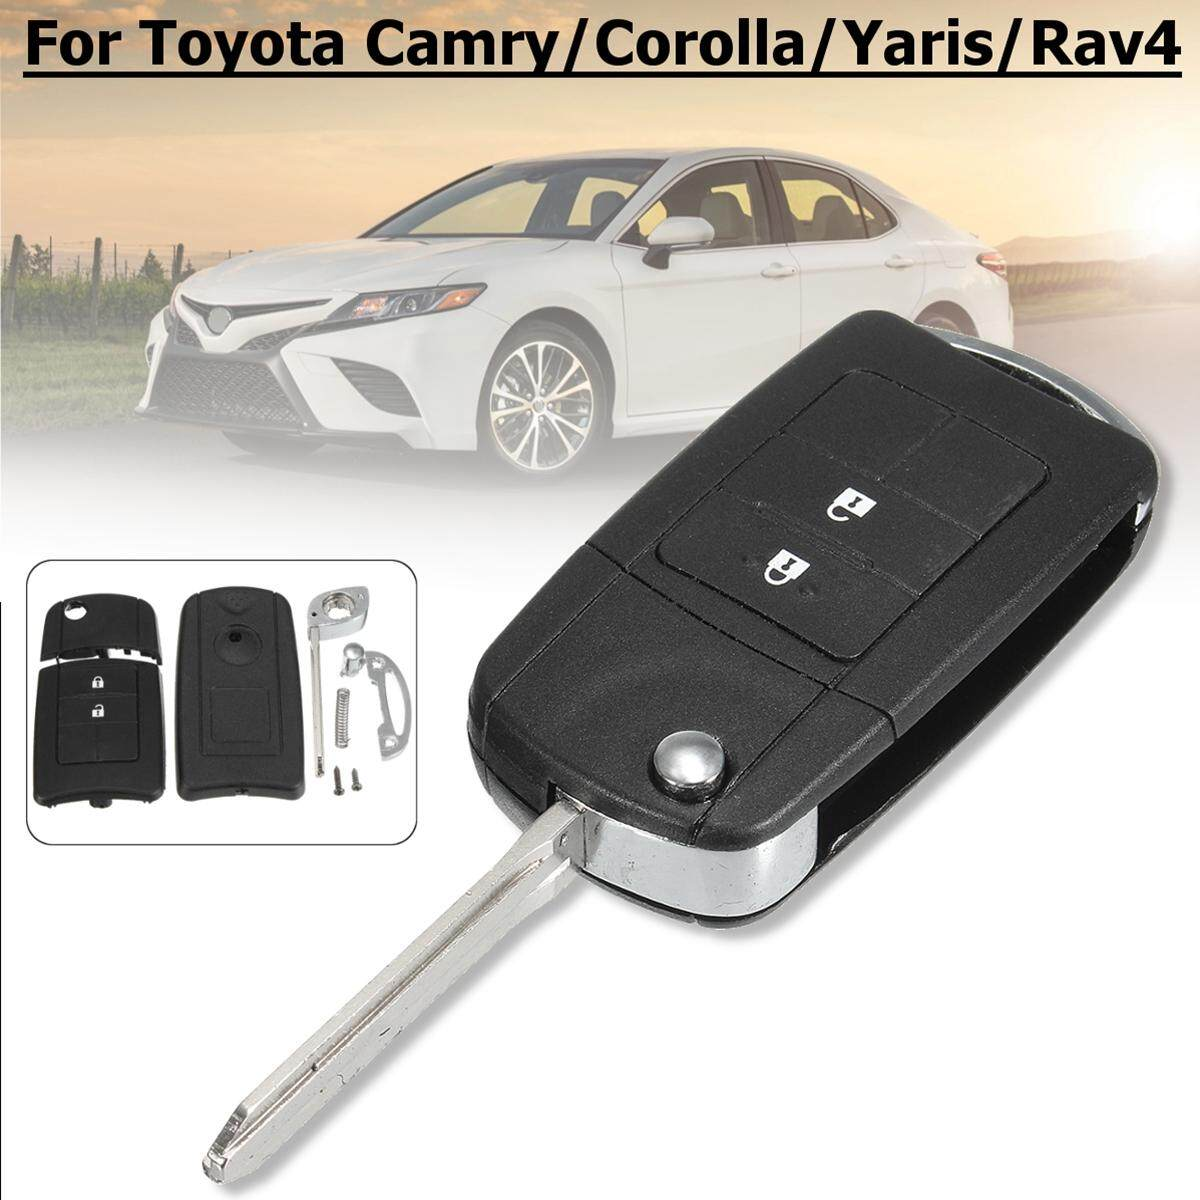 Replacement Key Case For 2 Buttons Toyota Camry Corolla RAV4 Yaris Without Blade